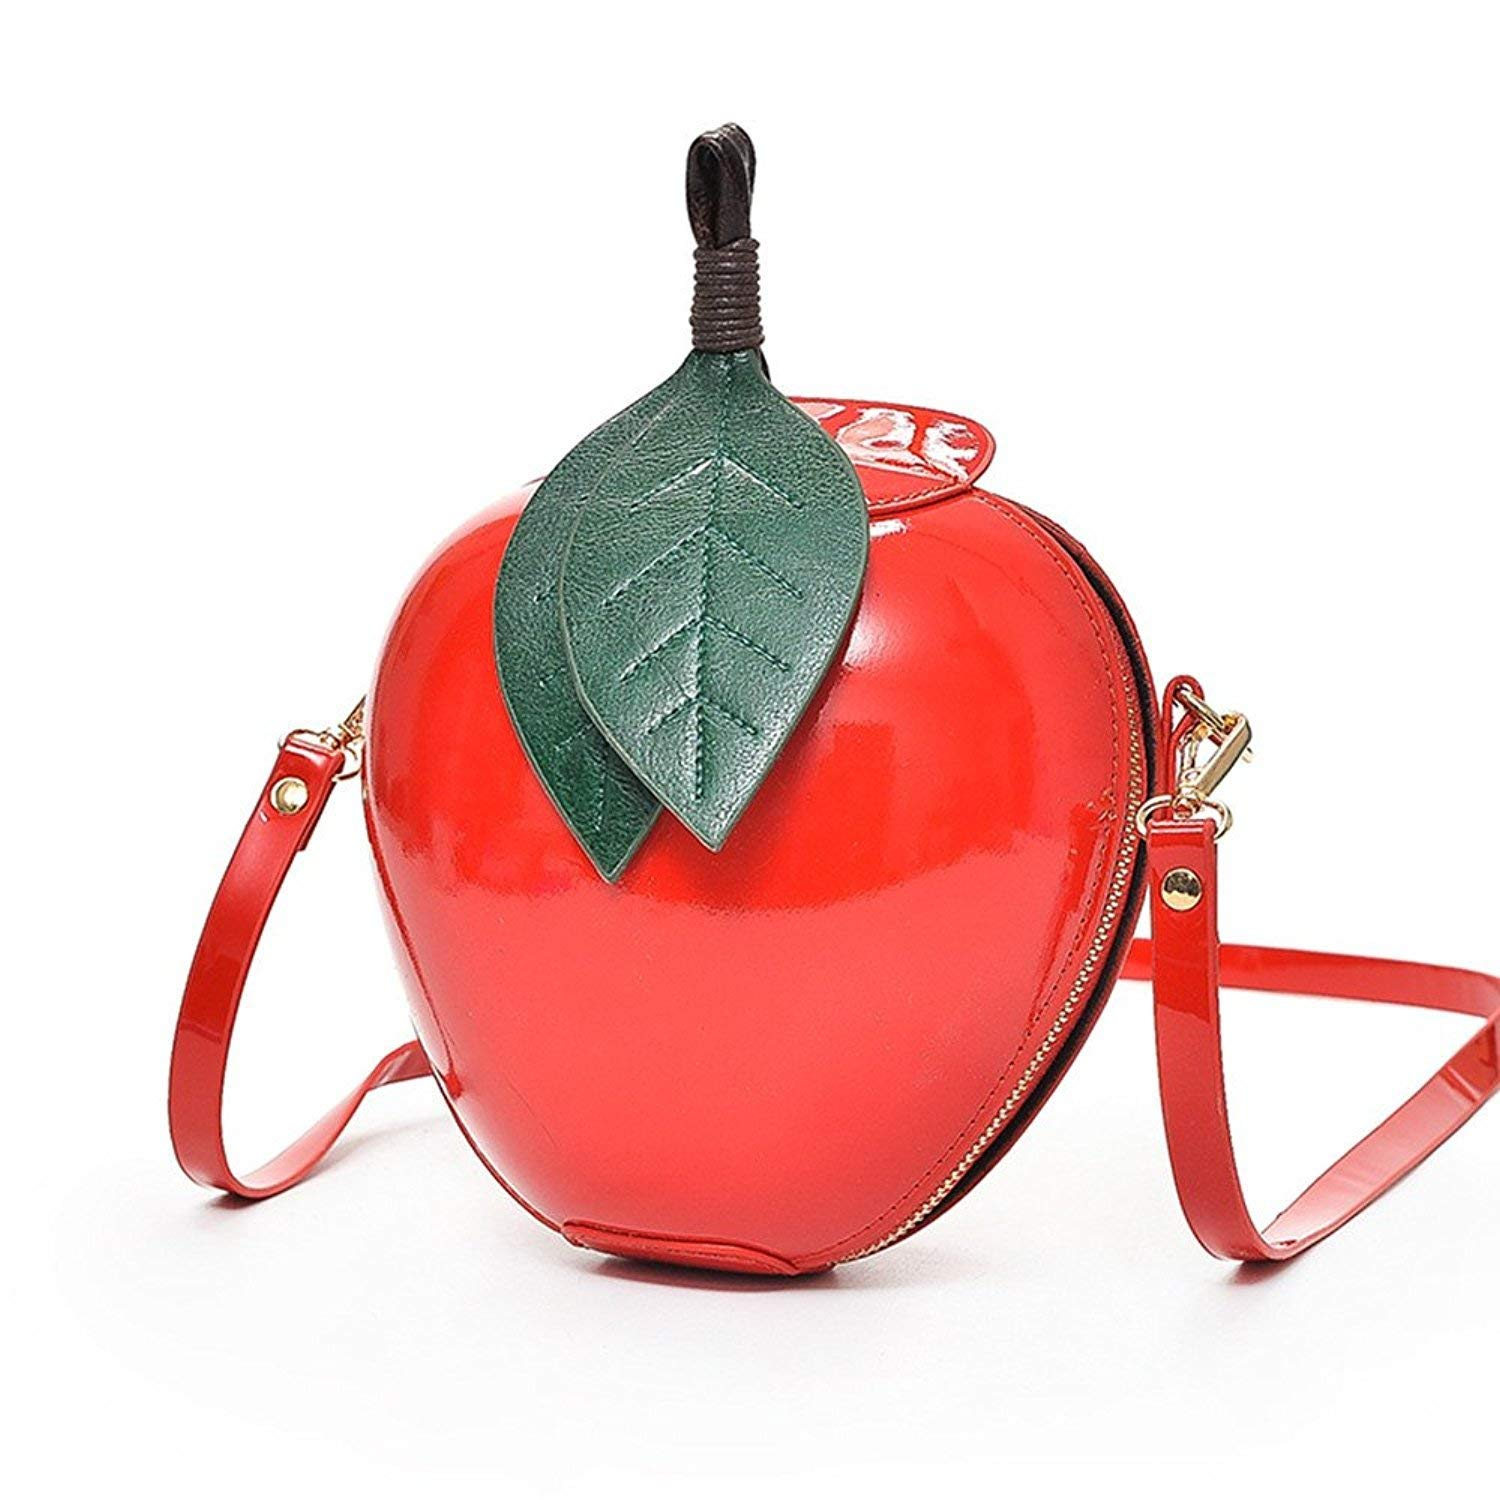 Amazon.com: De la Mujer Fashion Apple Shape bolso hosamtel ...